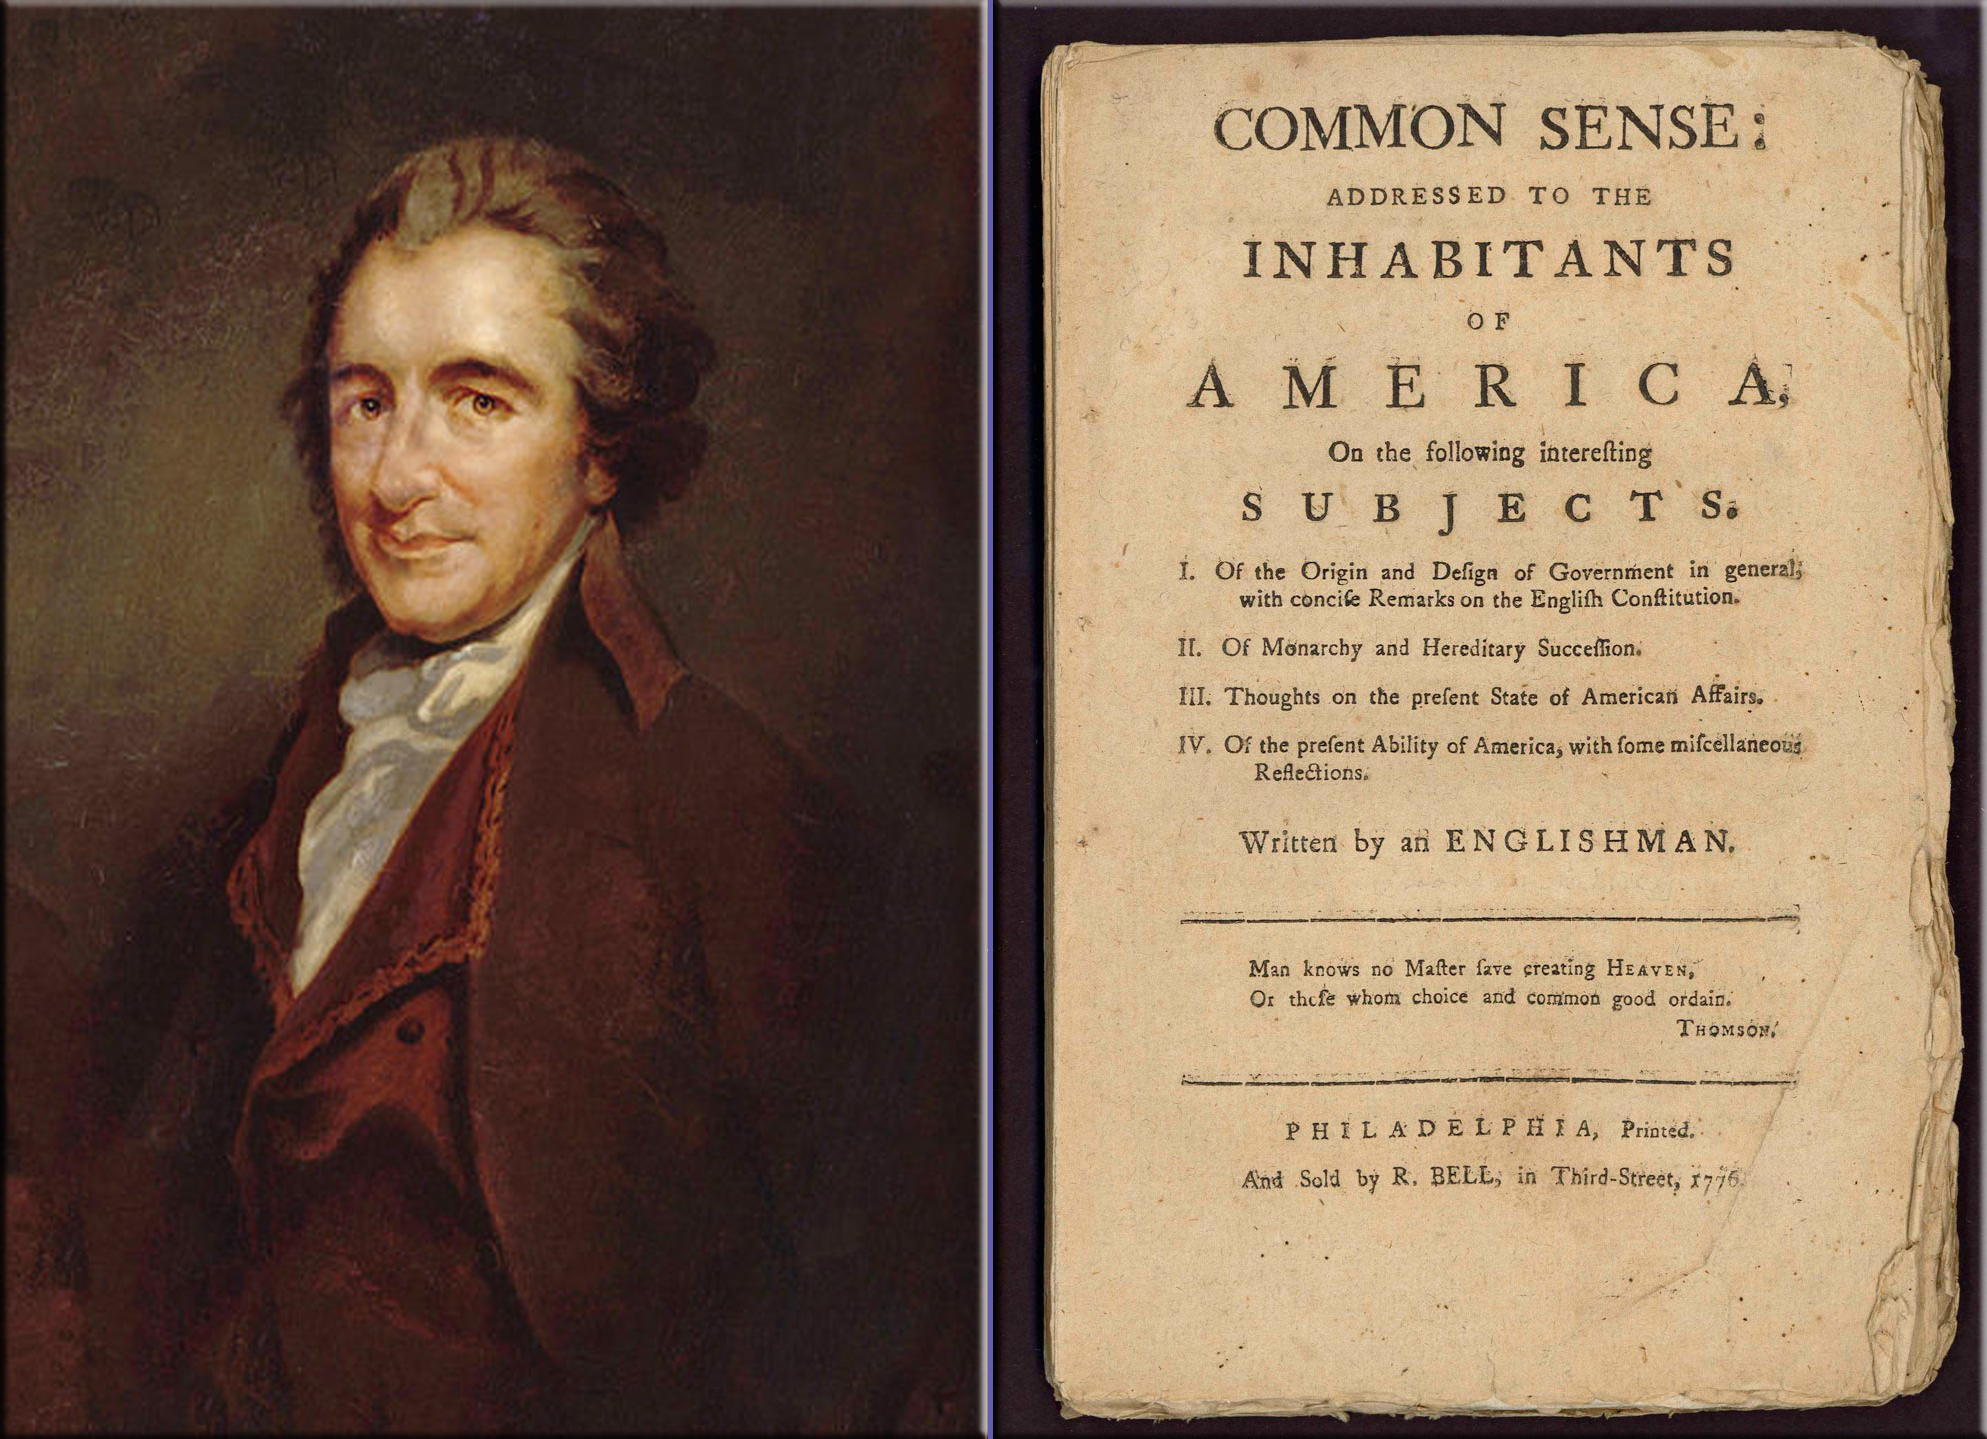 common sence by thomas paine Common sense is 48 page pamphlet written by thomas paine, but published anonymously in january 10, 1776 the document which was published right at the beginning of the american revolution argues in favor of america's independence from great britain.